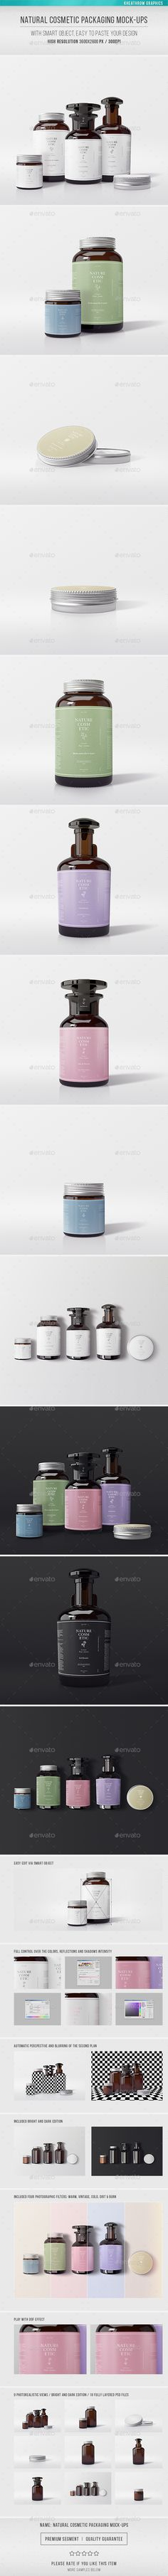 Natural Cosmetic Packaging MockUps — Photoshop PSD #jar #beauty • Available here → https://graphicriver.net/item/natural-cosmetic-packaging-mockups/16639138?ref=pxcr